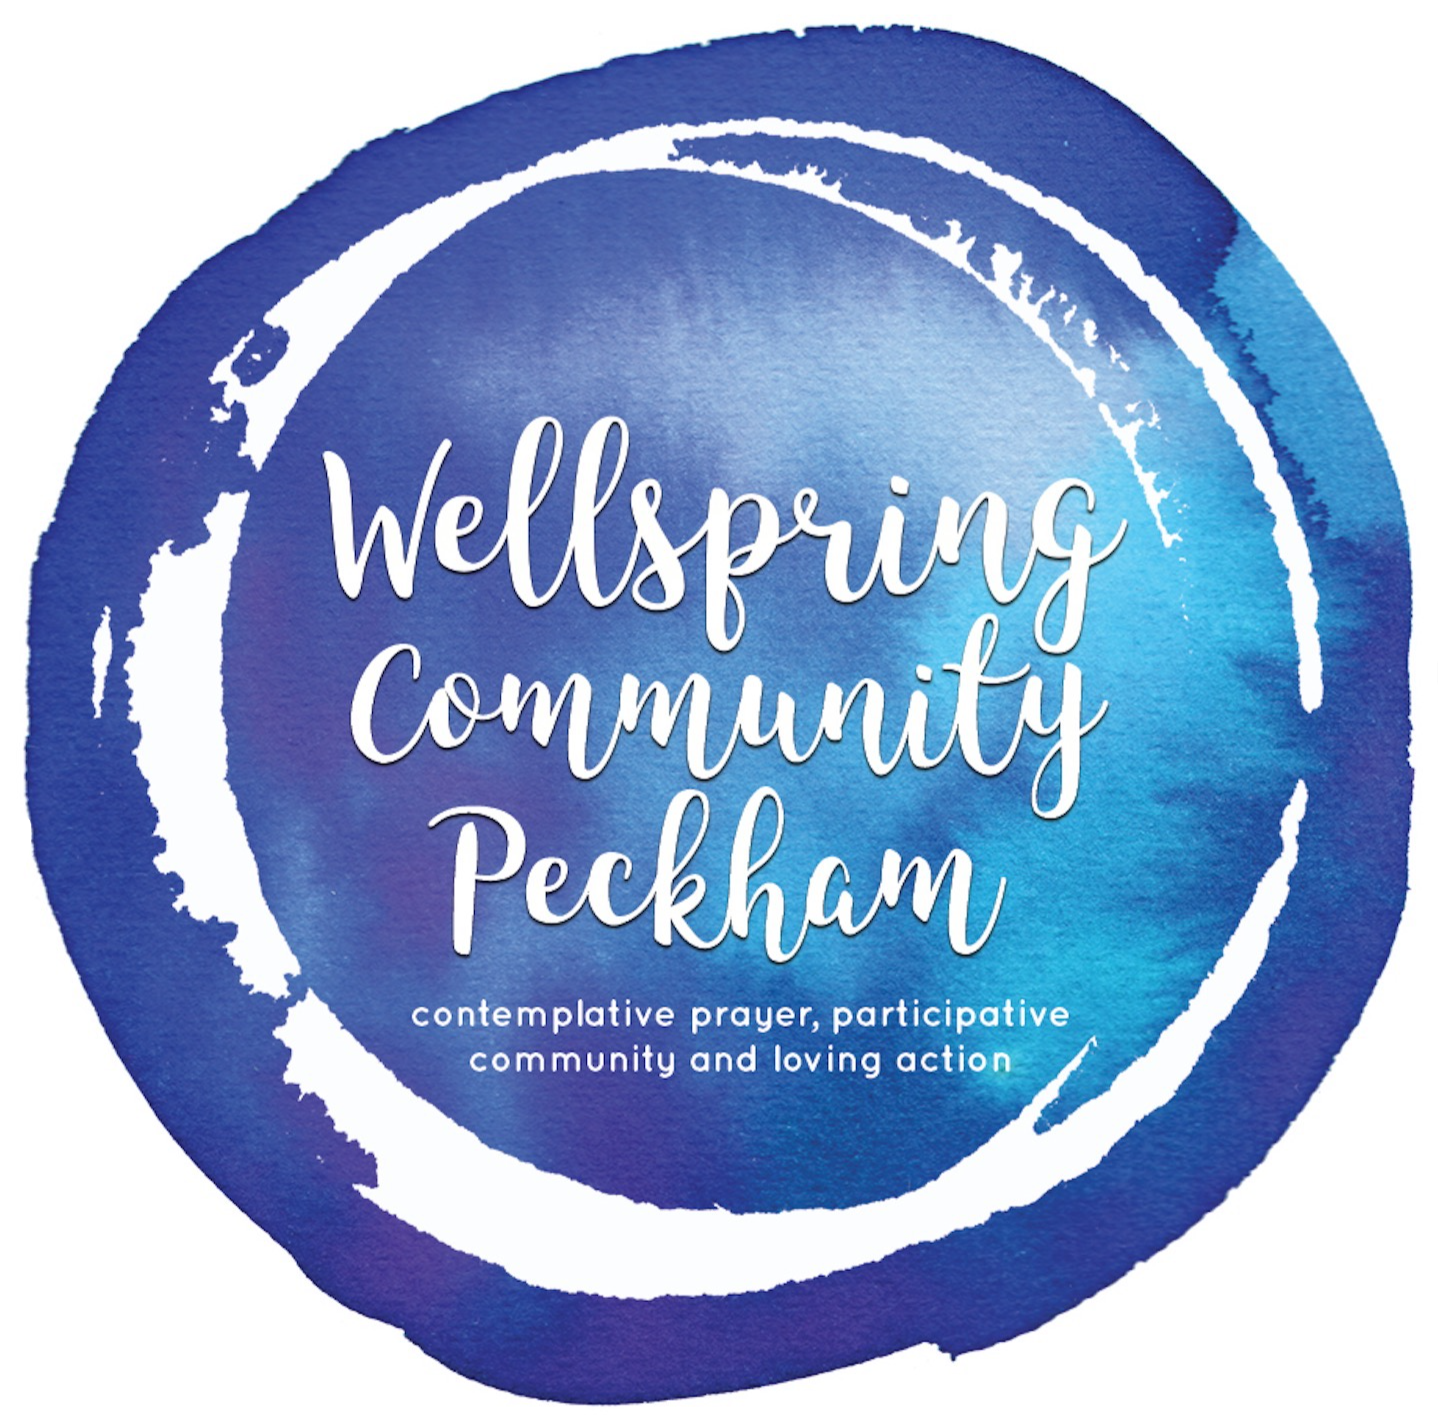 The Wellspring Community Peckham